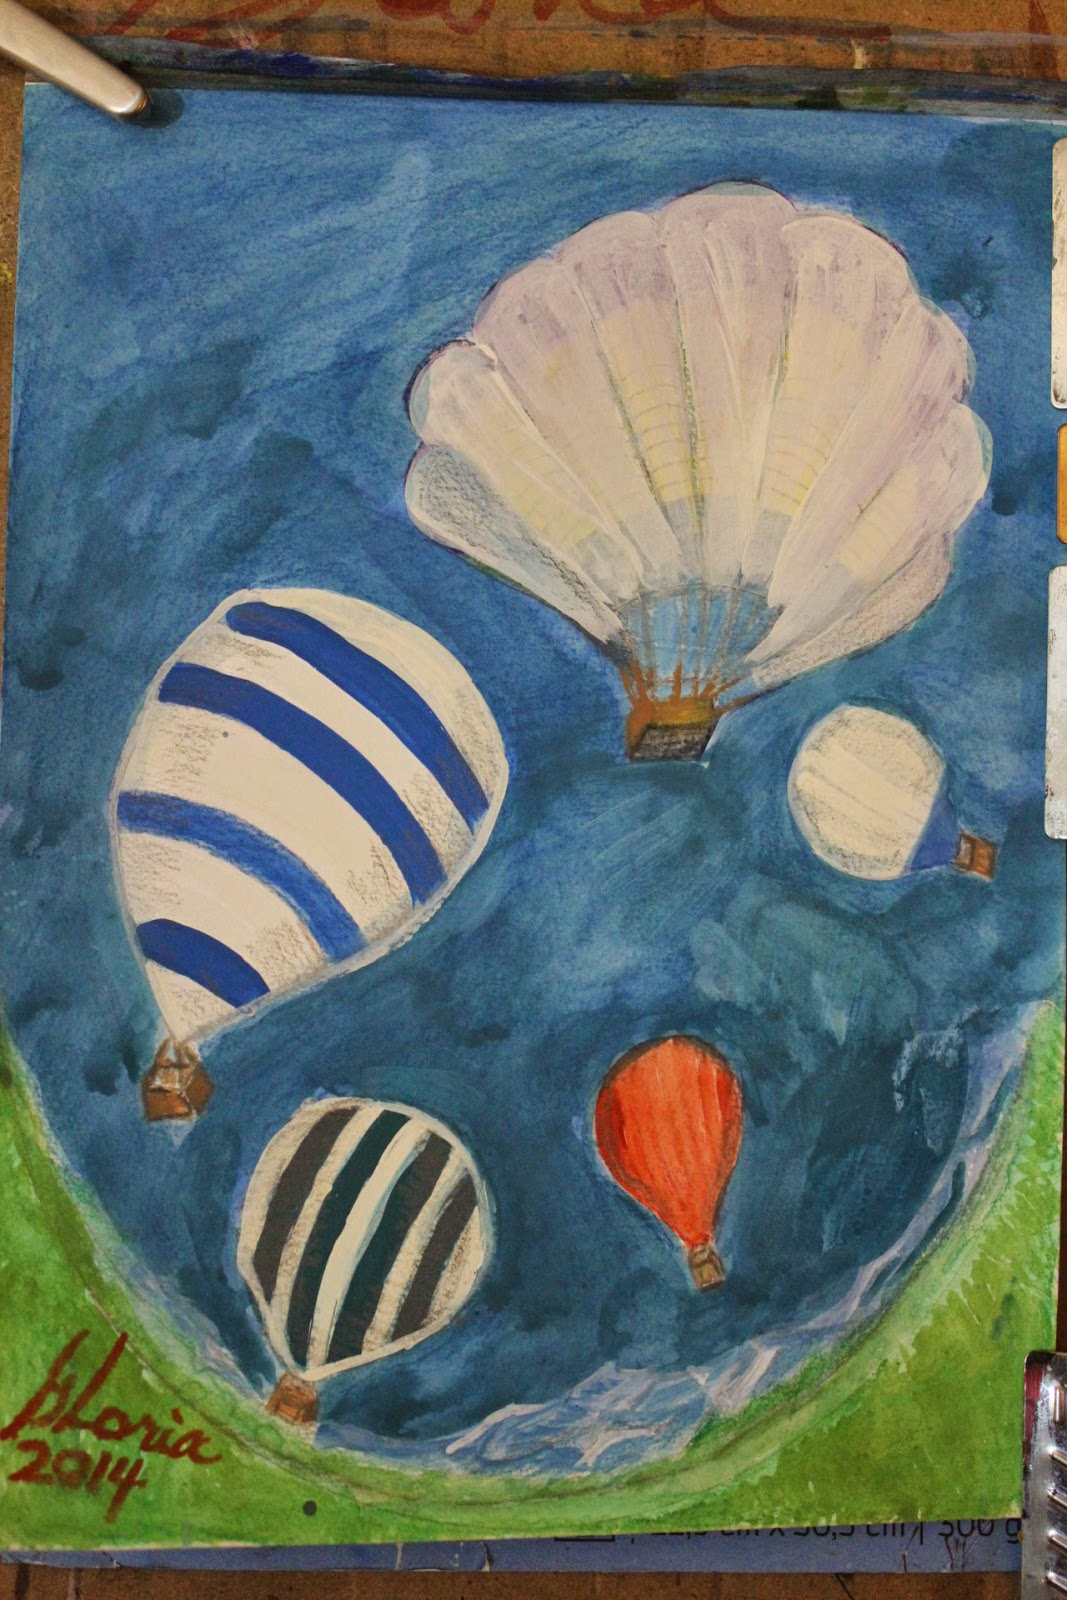 sketch-of-hot-air-balloons-by-Gloria-Poole-of-Missouri-16-June-2014-mixed-media